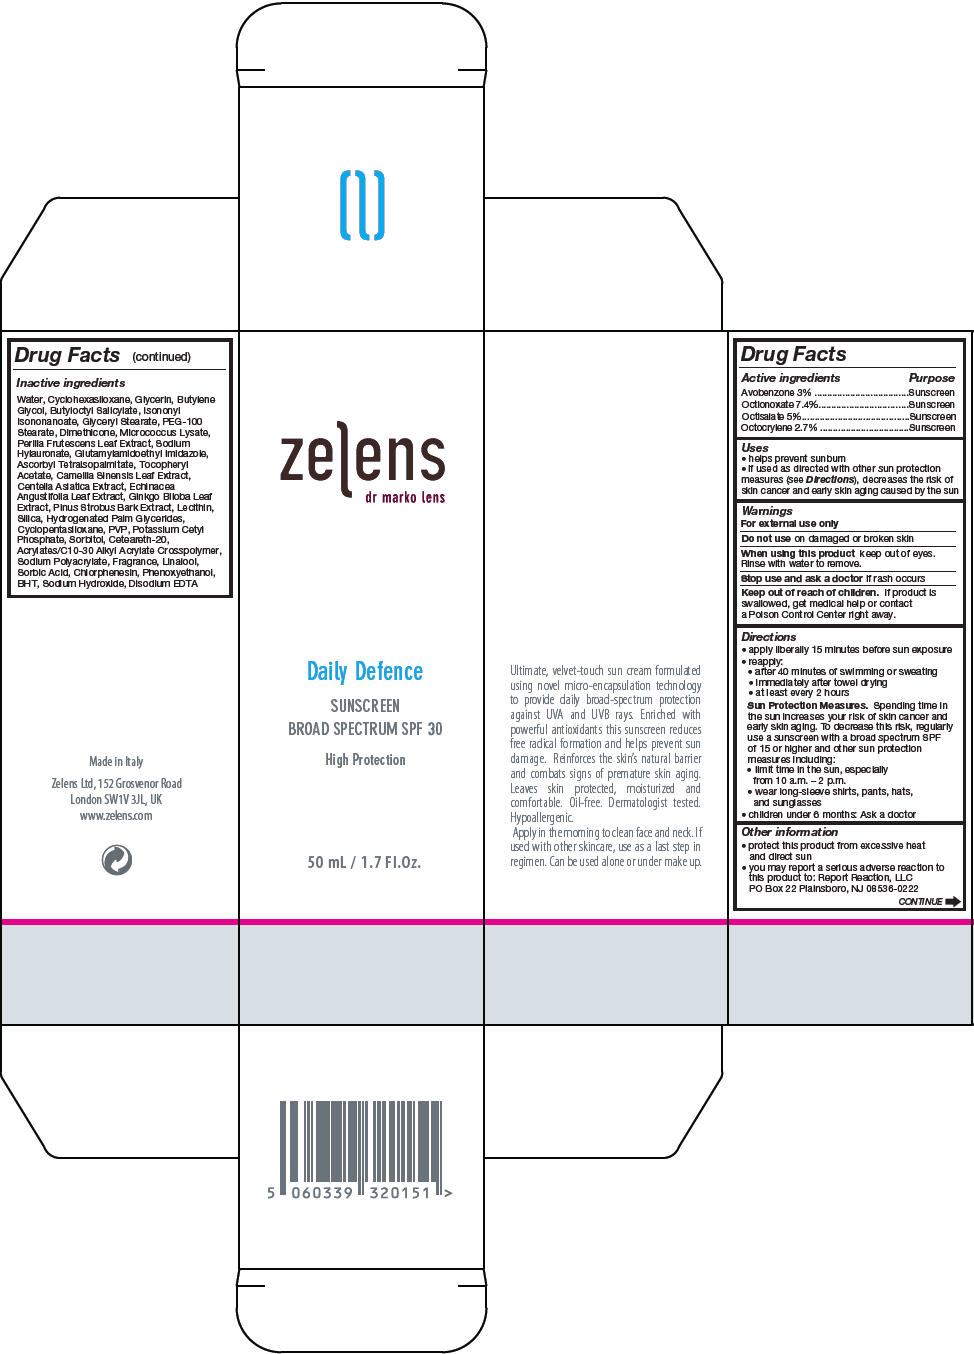 Daily Defence Sunscreen Broad Spectrum Spf30 (Octinoxate, Octisalate, Avobenzone, And Octocrylene) Cream [Zelens Limited]